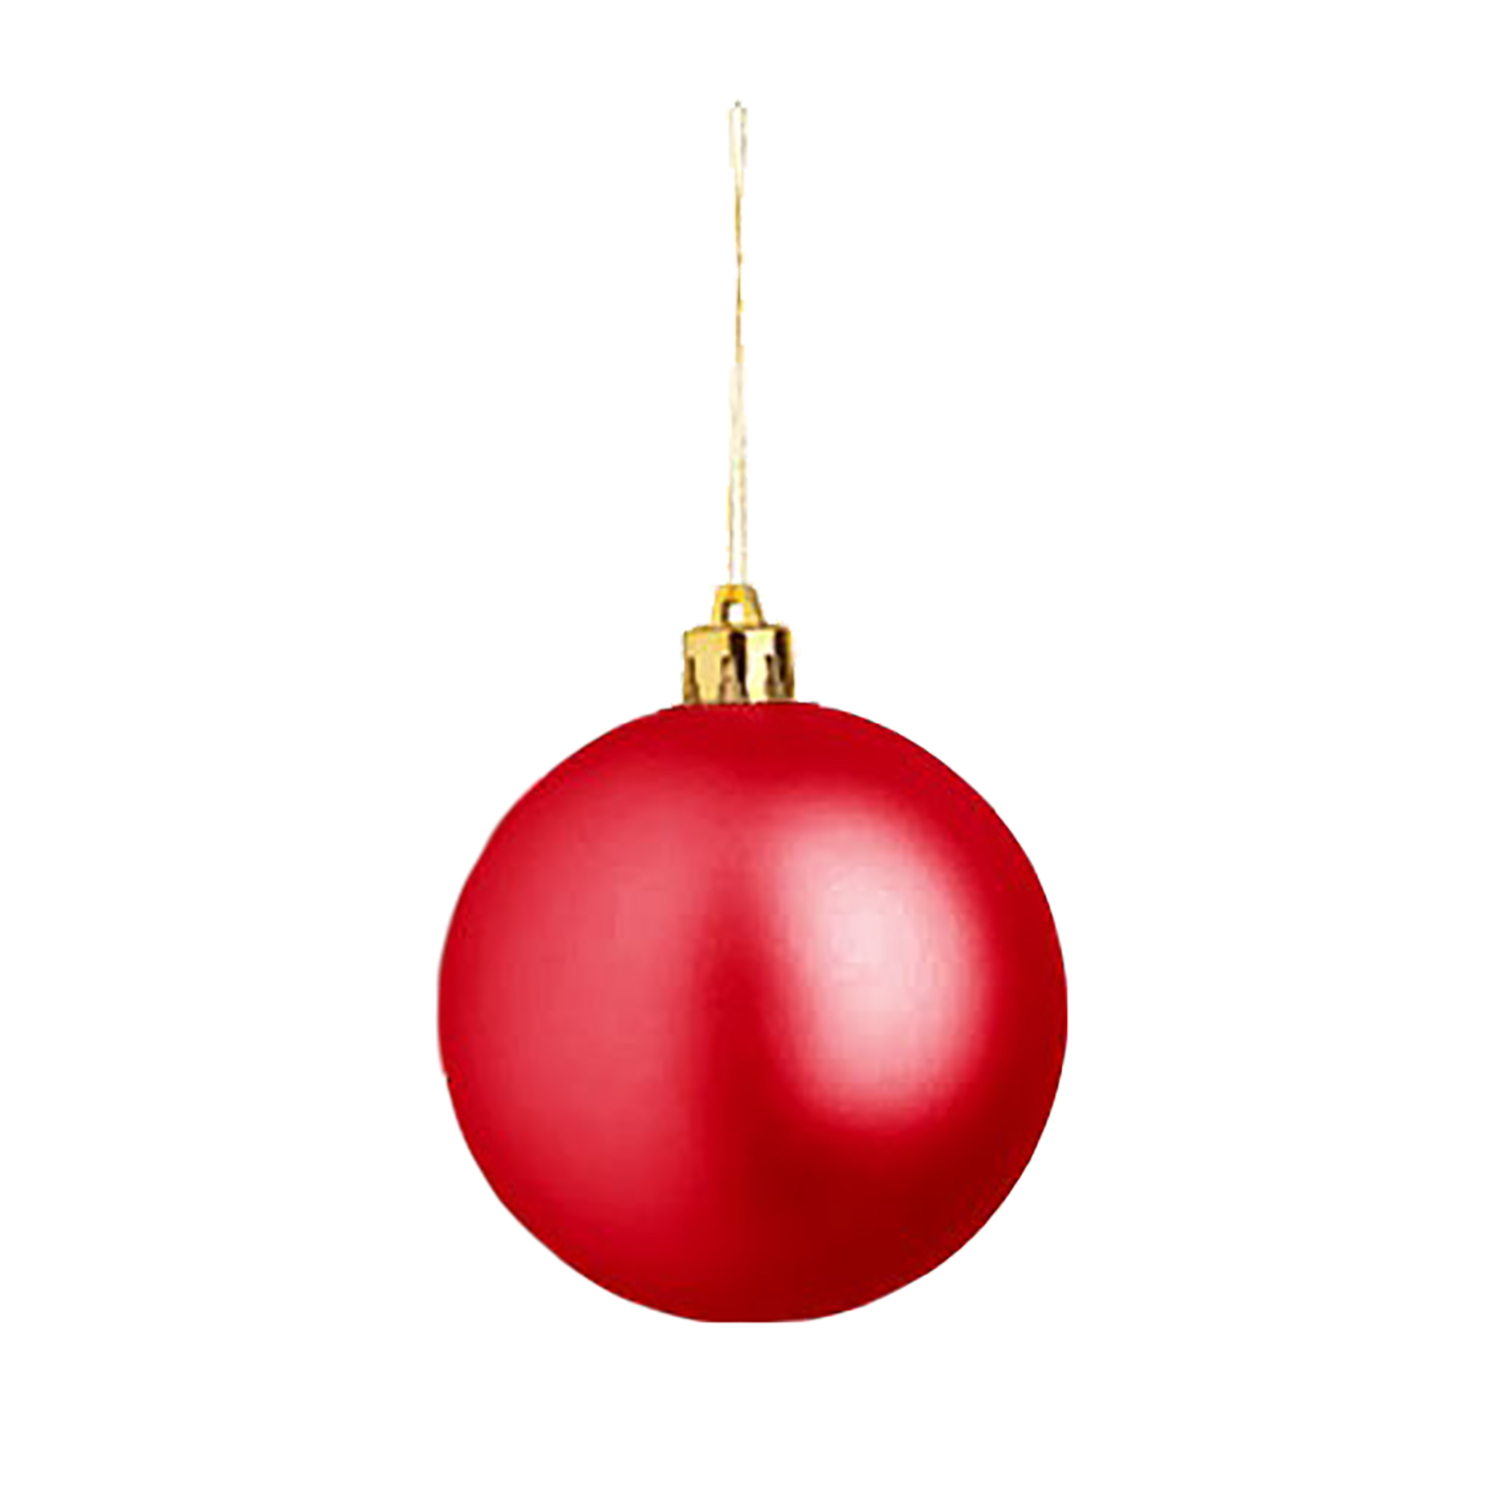 Christmas Ball (Christmas ornament 8cm) - hmi99099-04 (Red)